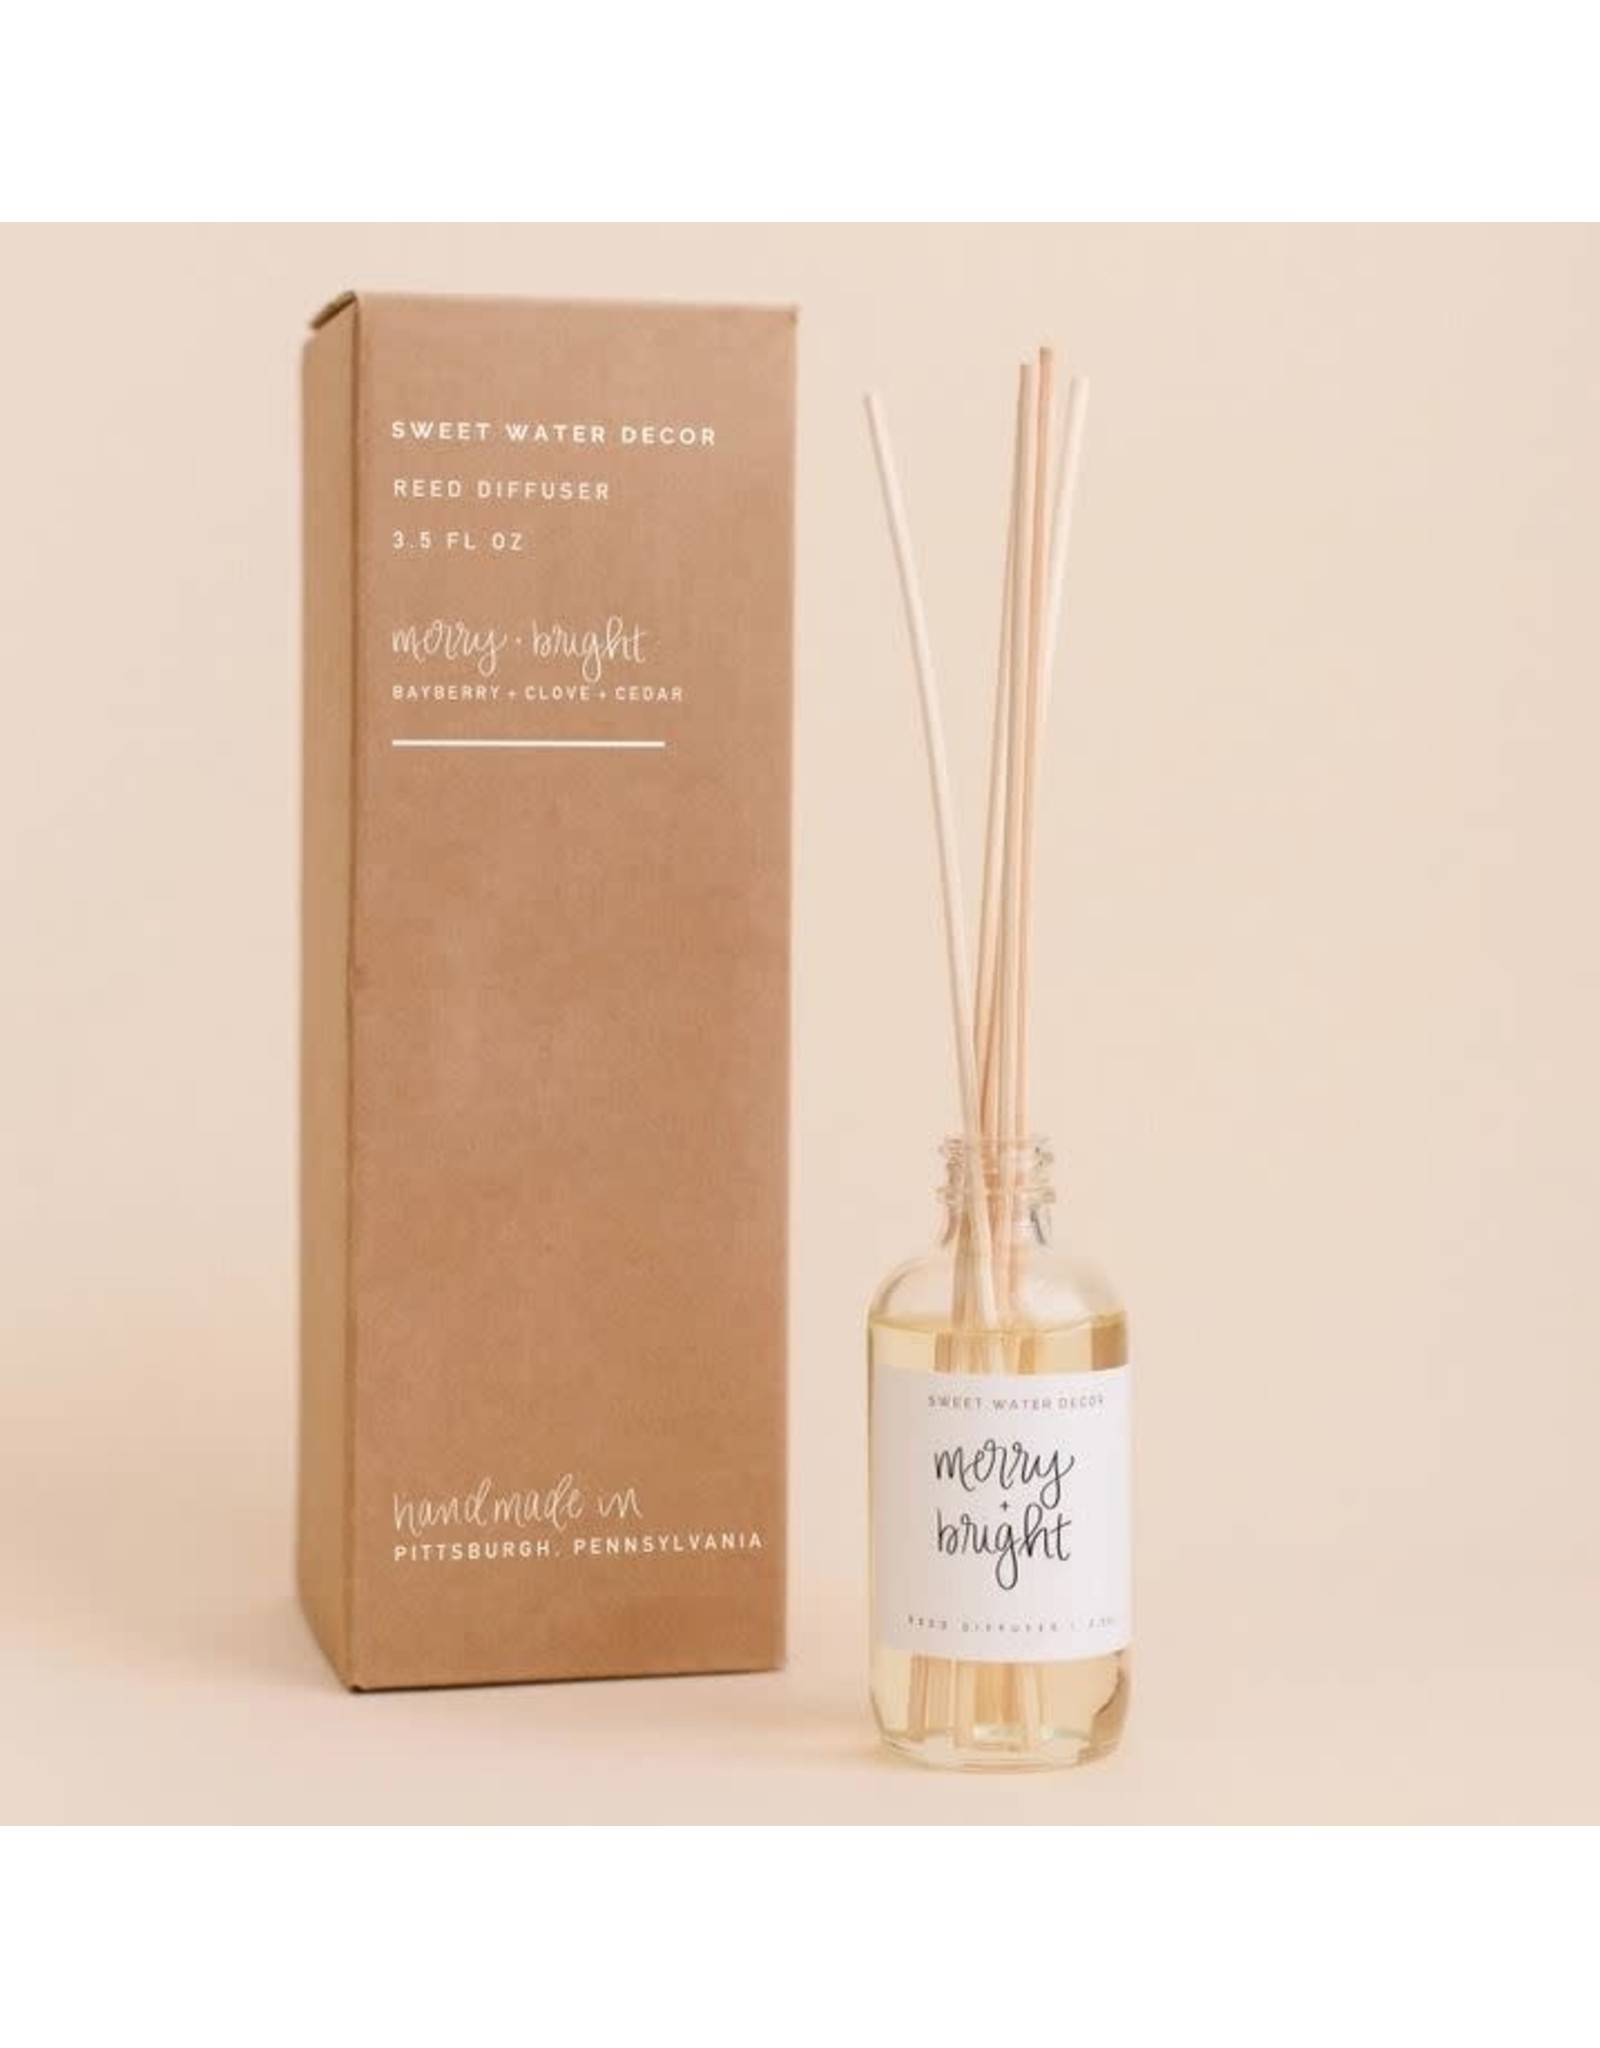 SWEET WATER DECOR HOLIDAY DIFFUSER